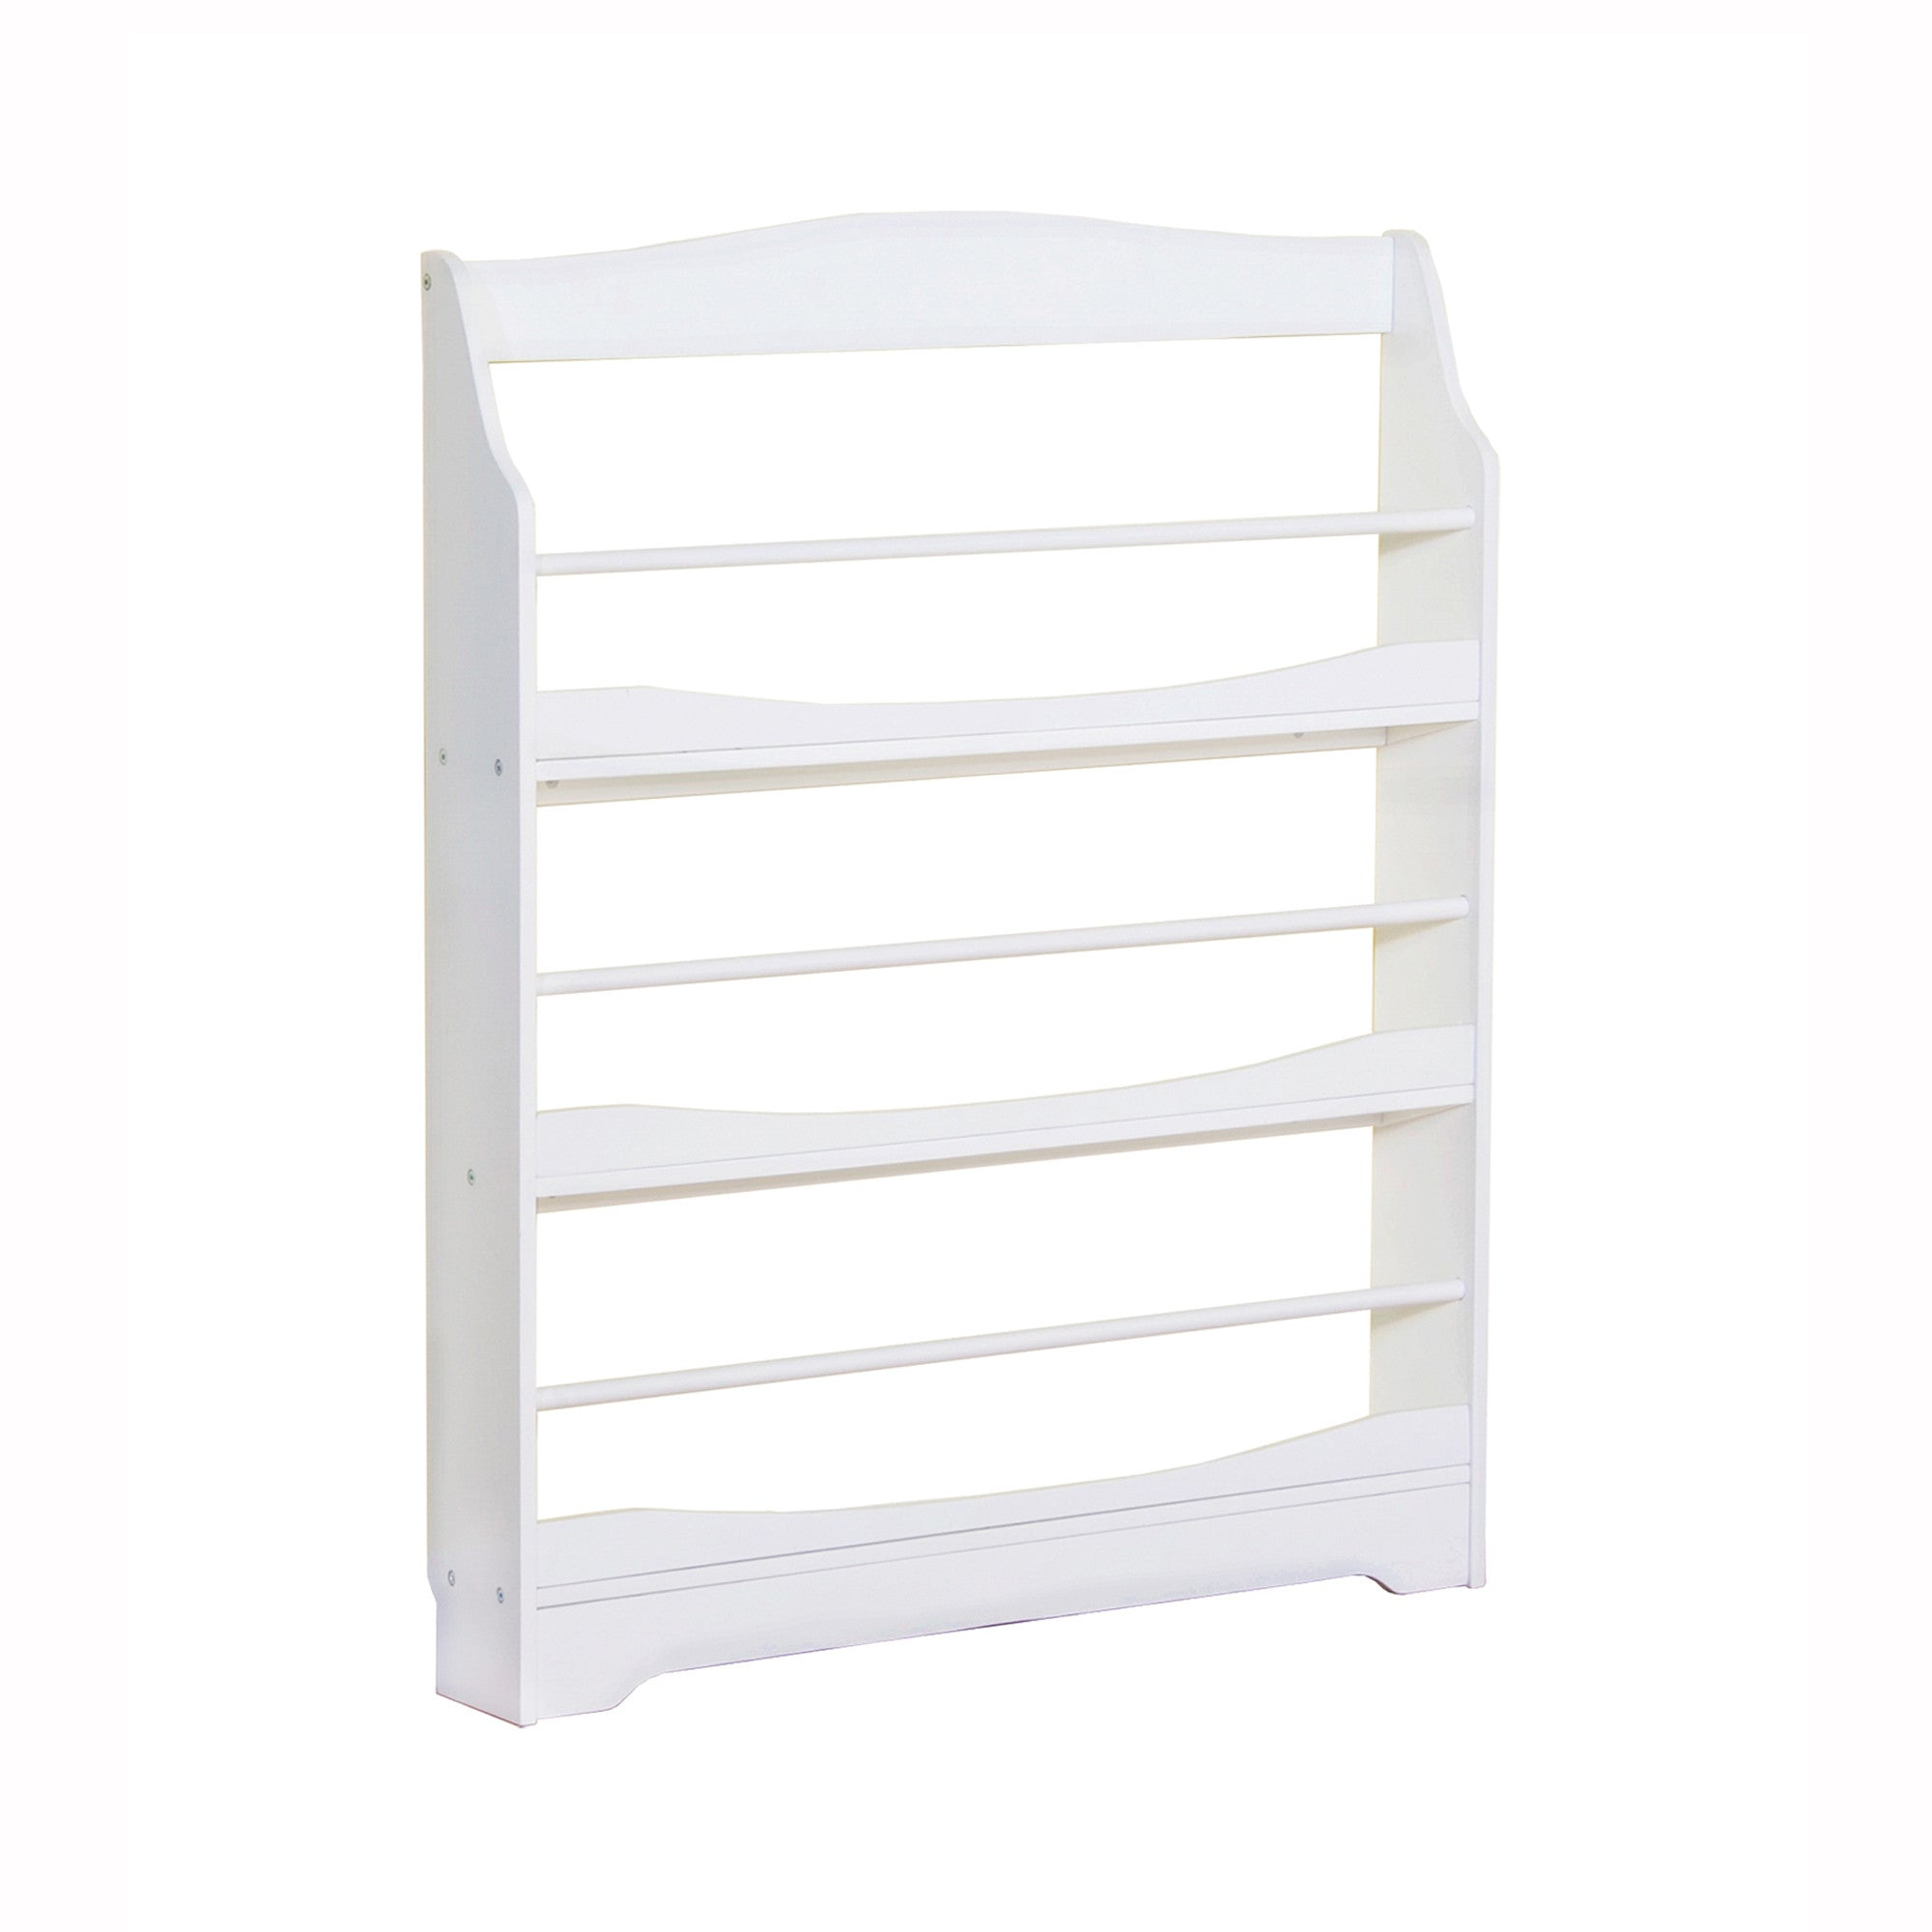 Guidecraft Expressions Bookrack White G87107